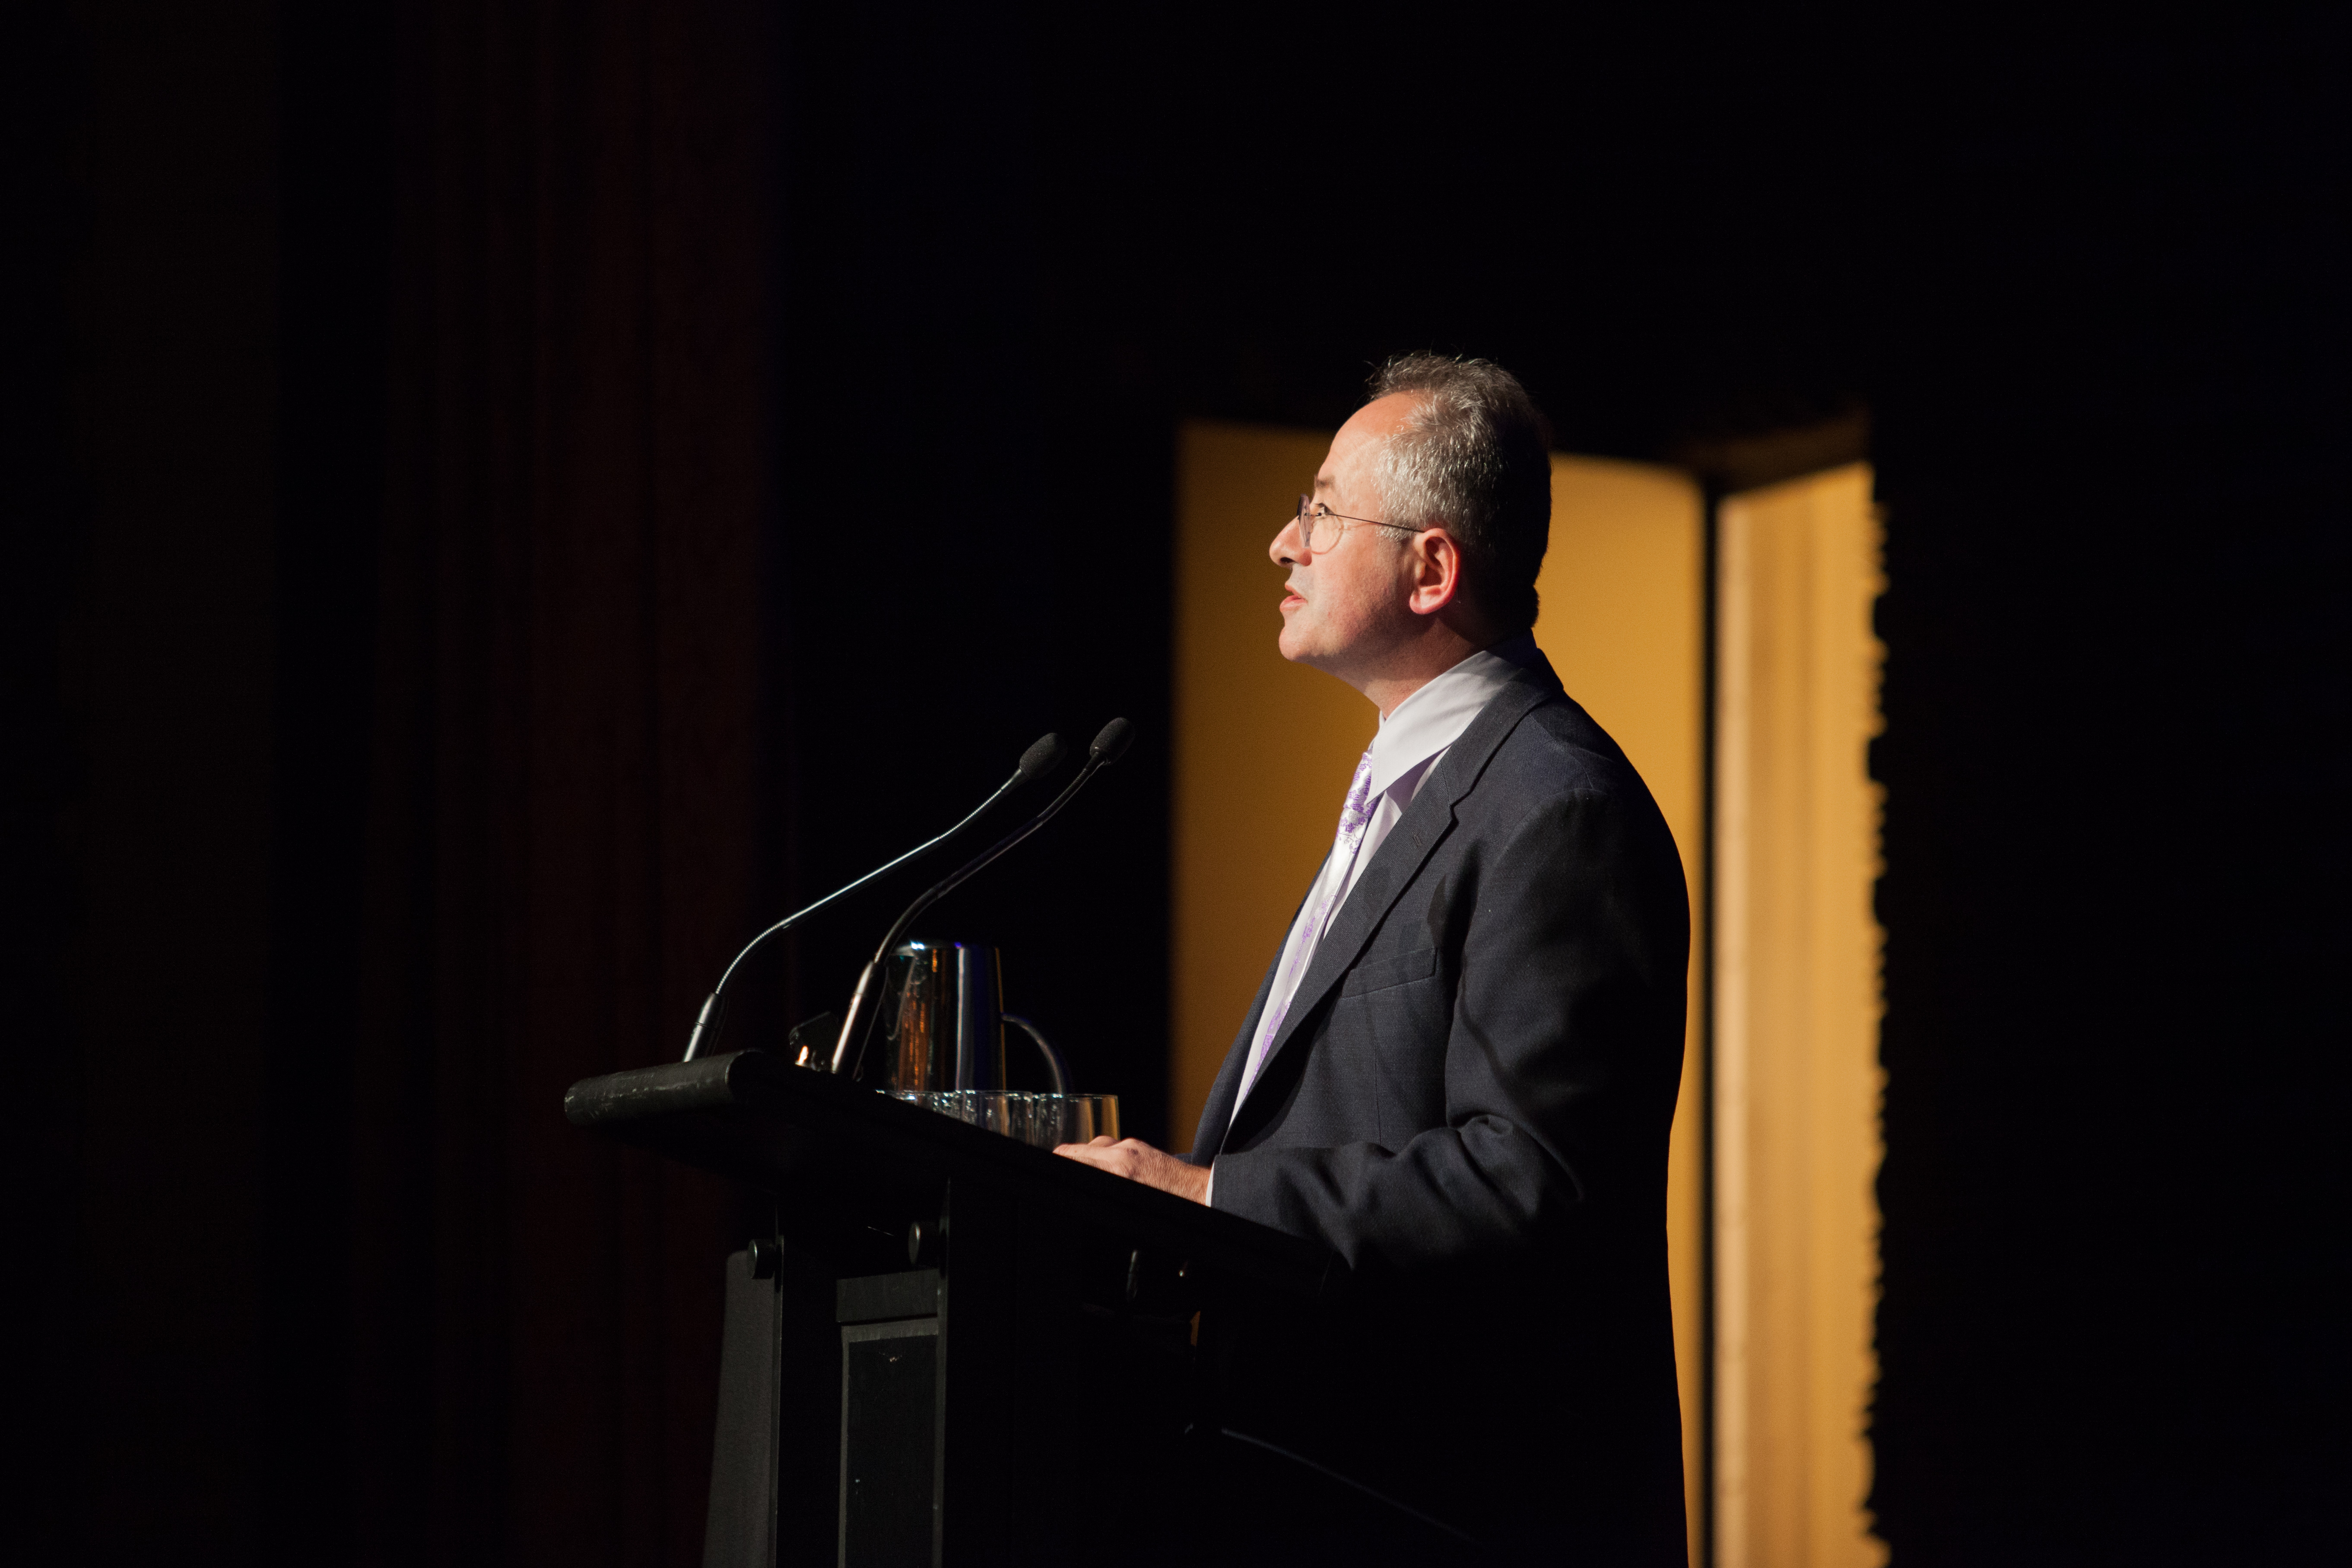 Andrew Denton presents his Argument (Connor O'Brien)